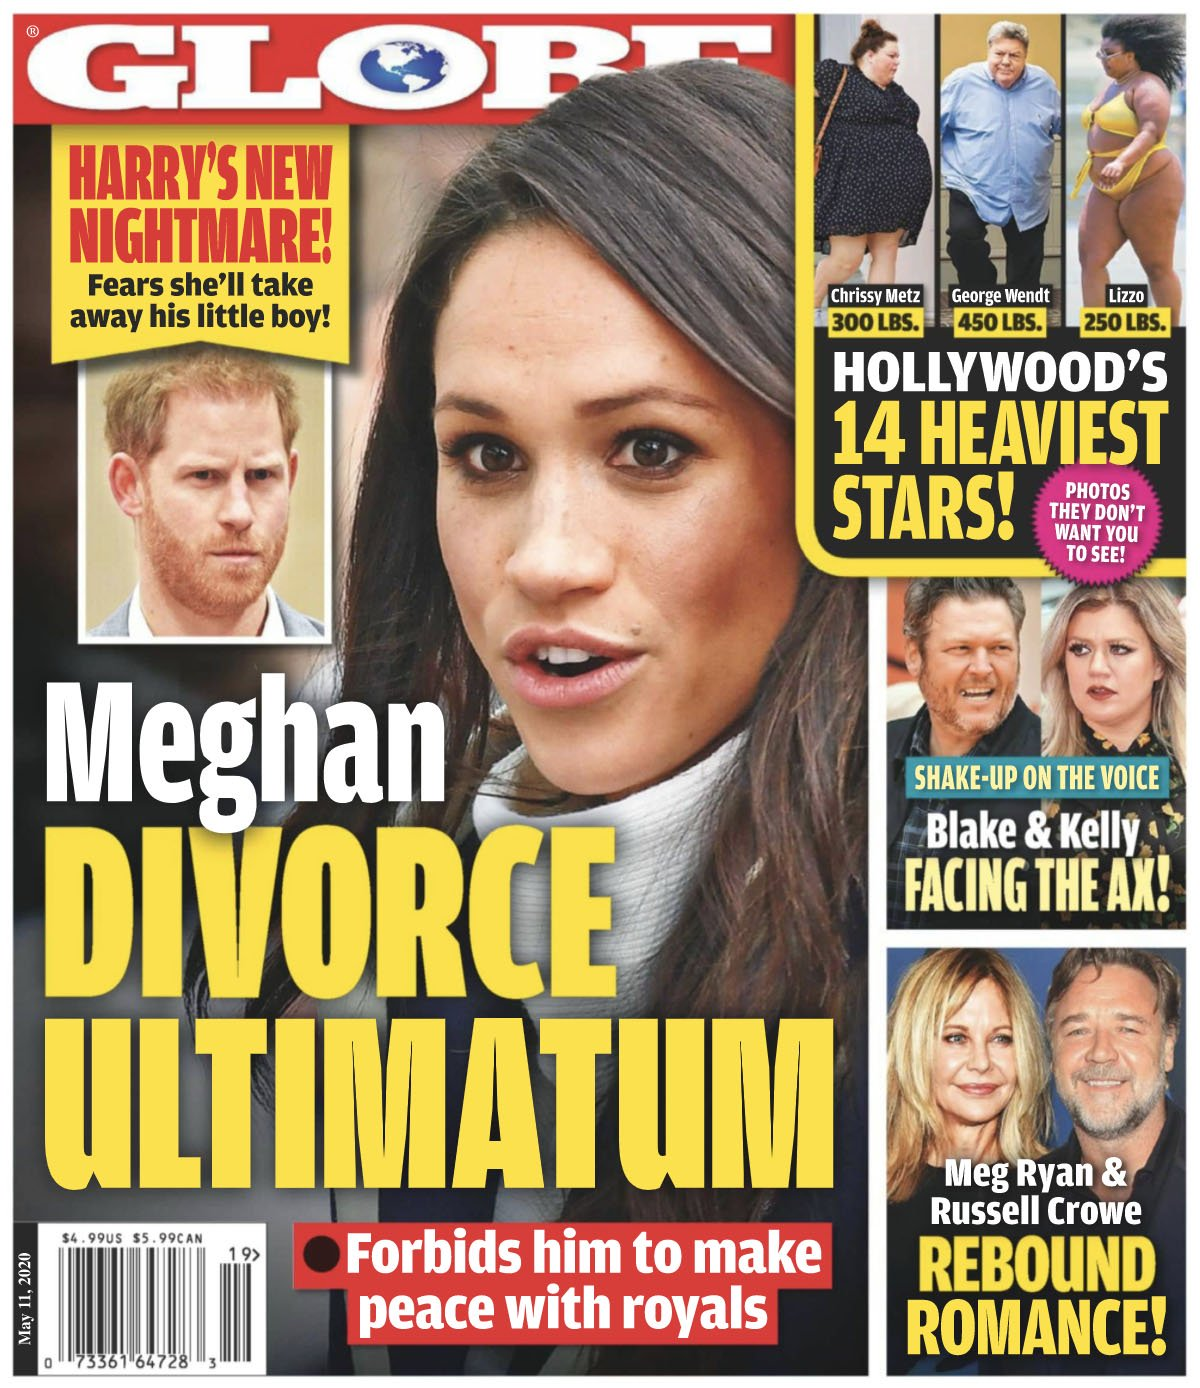 Meghan Markle on the cover of the Globe.